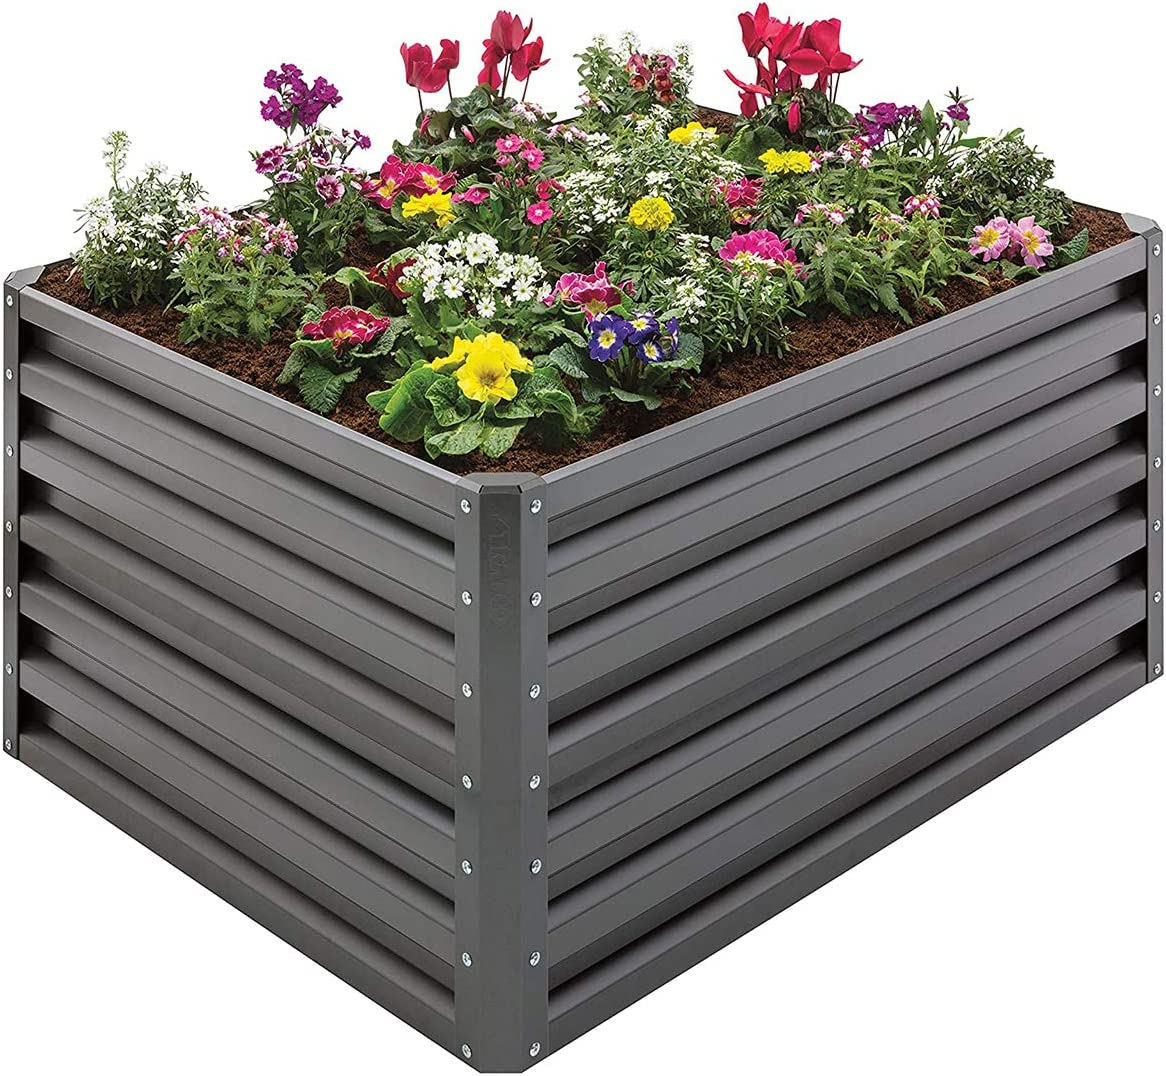 Stratco Raised Steel Metal Outdoor Decor Rectangular Tall Vegetable Garden Herb Bed Planter Box 20 Cubic Ft. Capacity, 46 x 35 x 62 Inches, Slate Gray